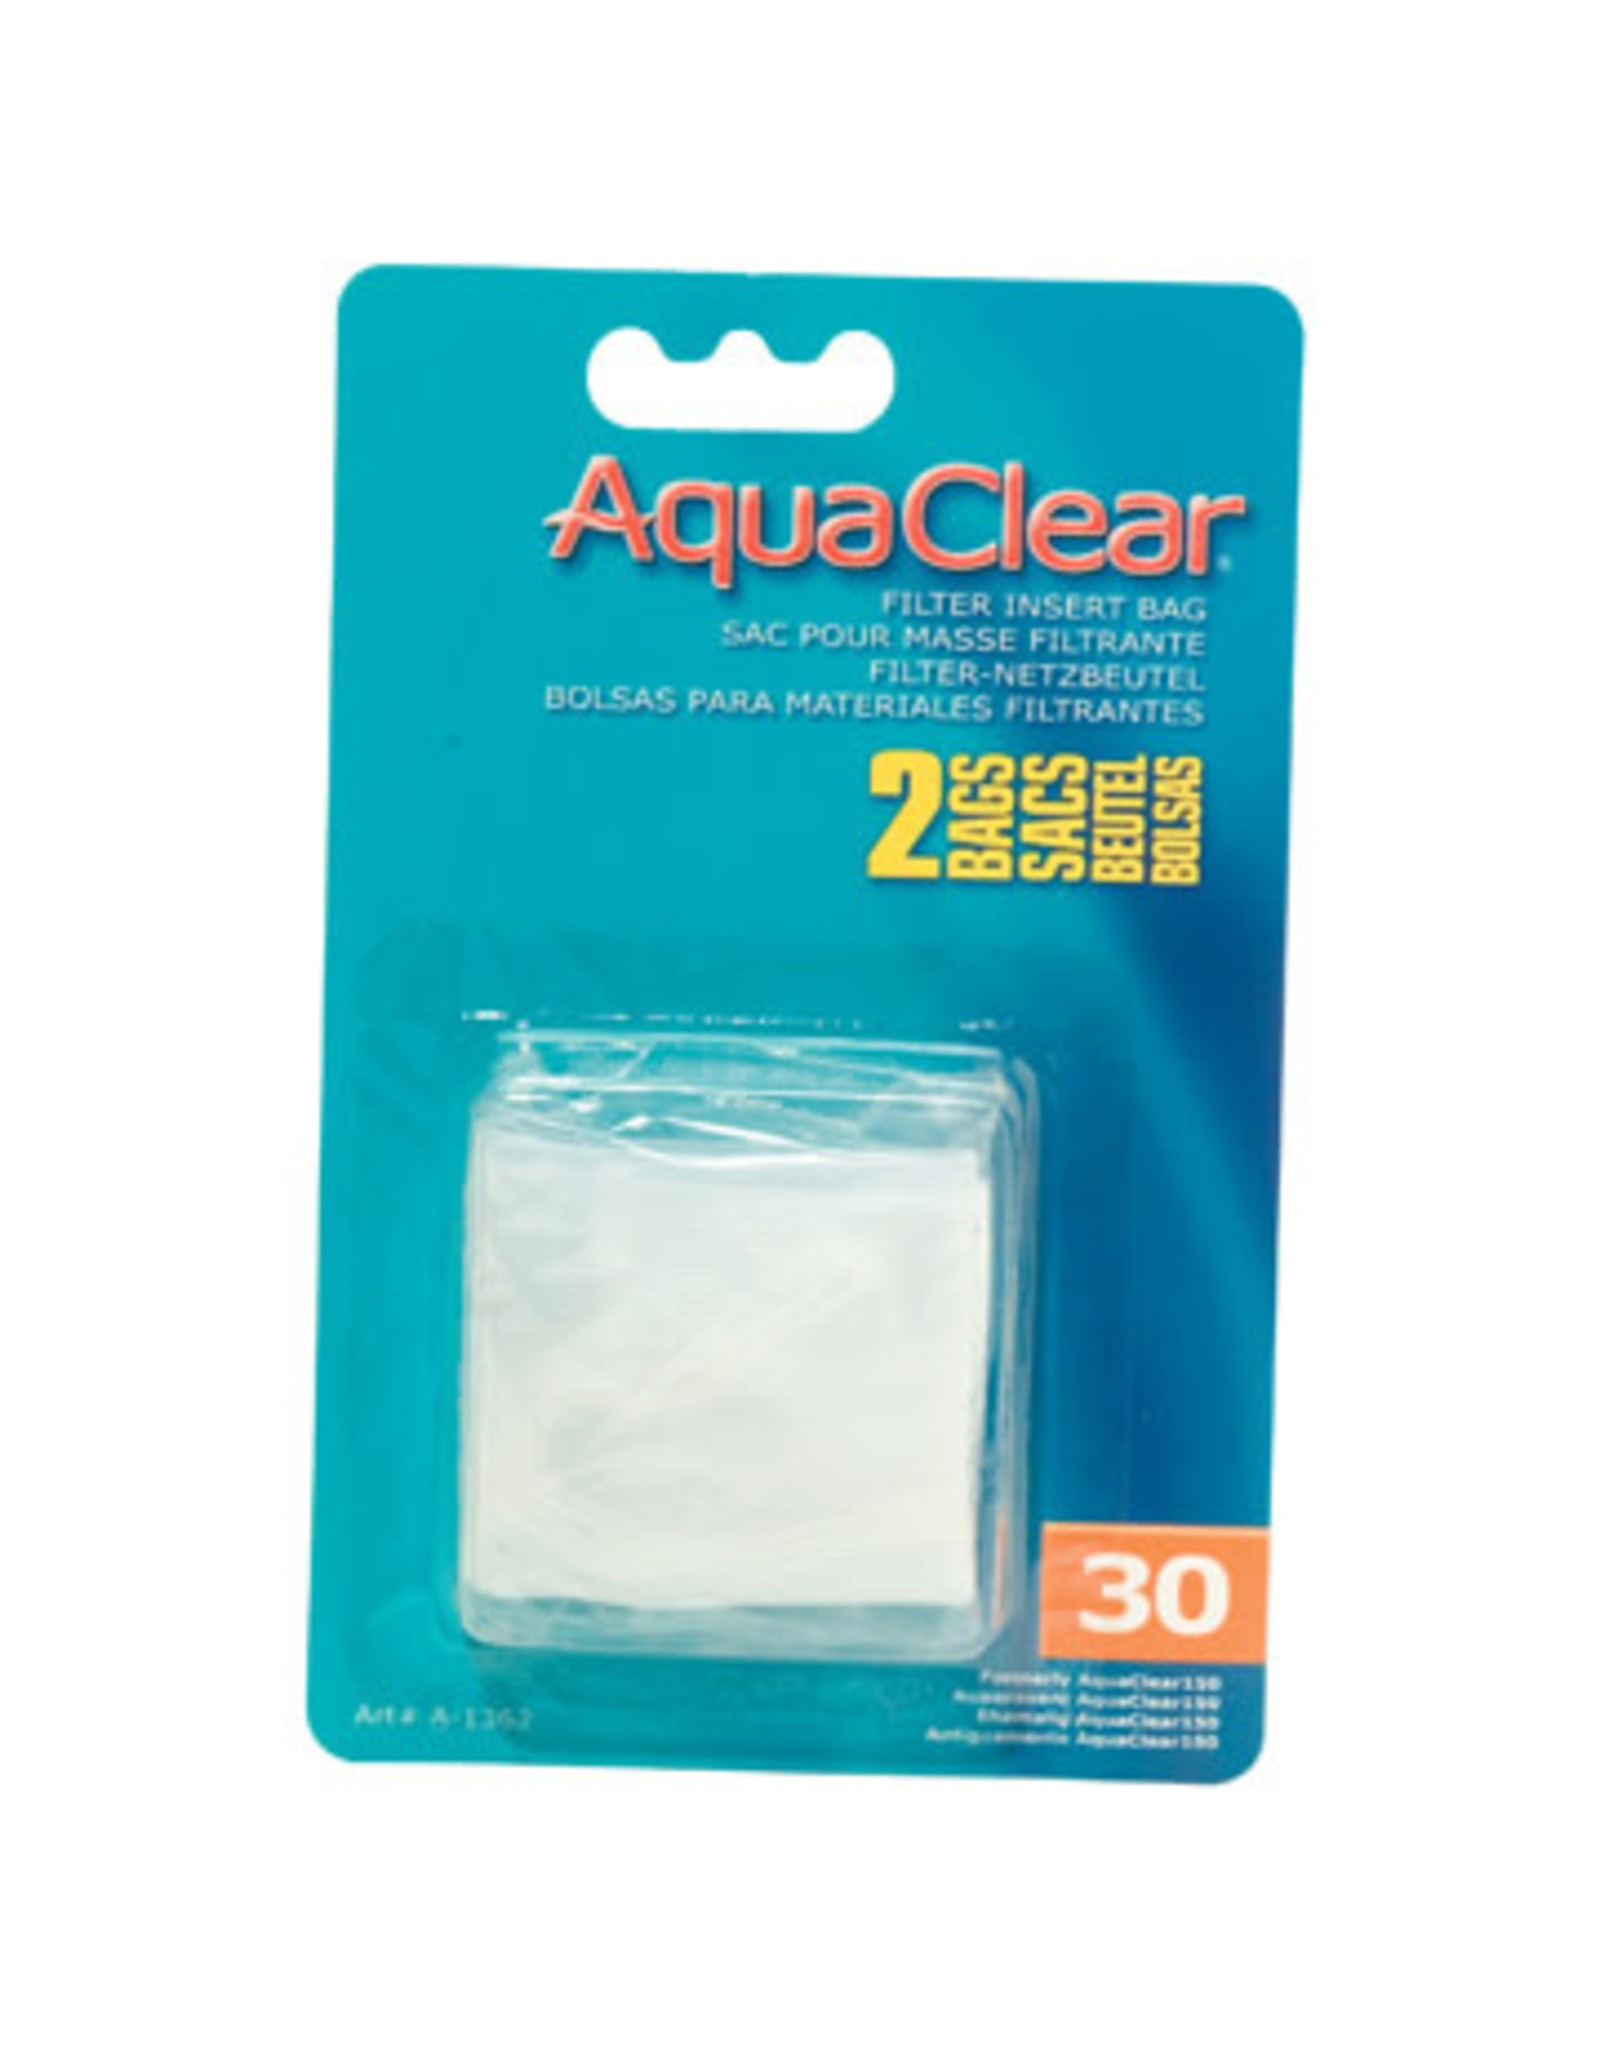 AquaClear Nylon Filter Media Bags for AquaClear 30 - 2 Pack